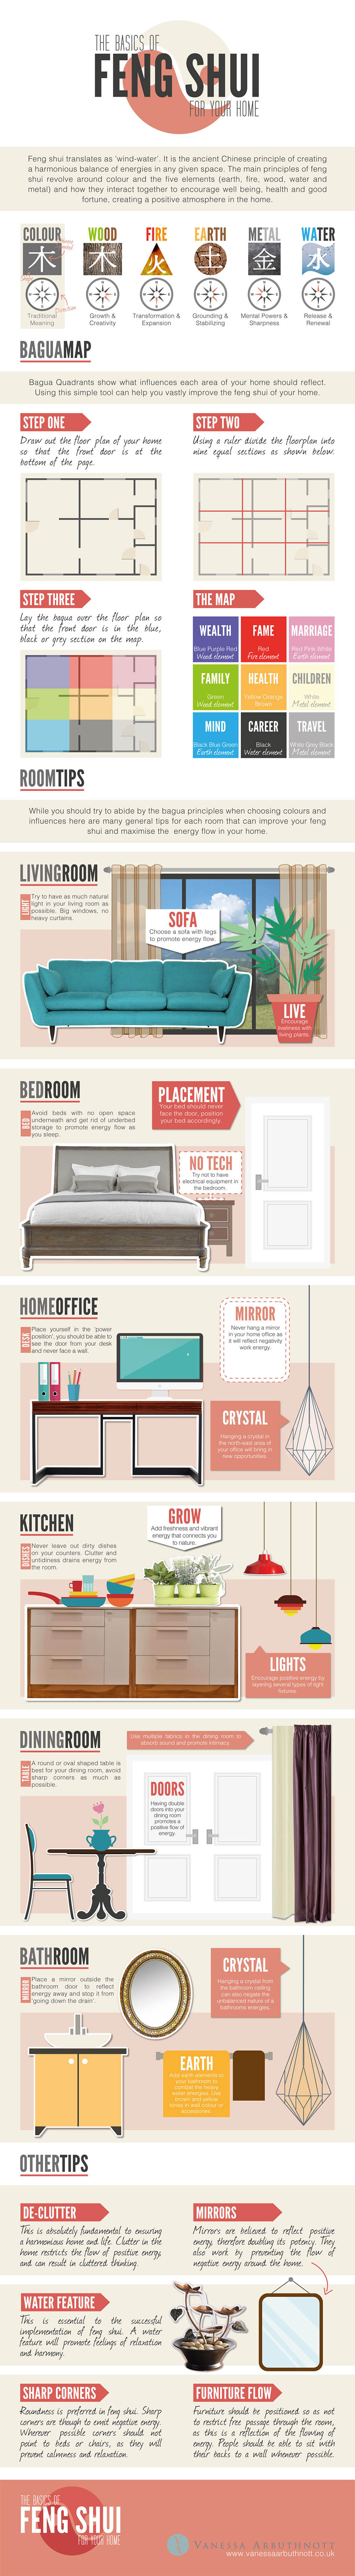 feng shui guide for home